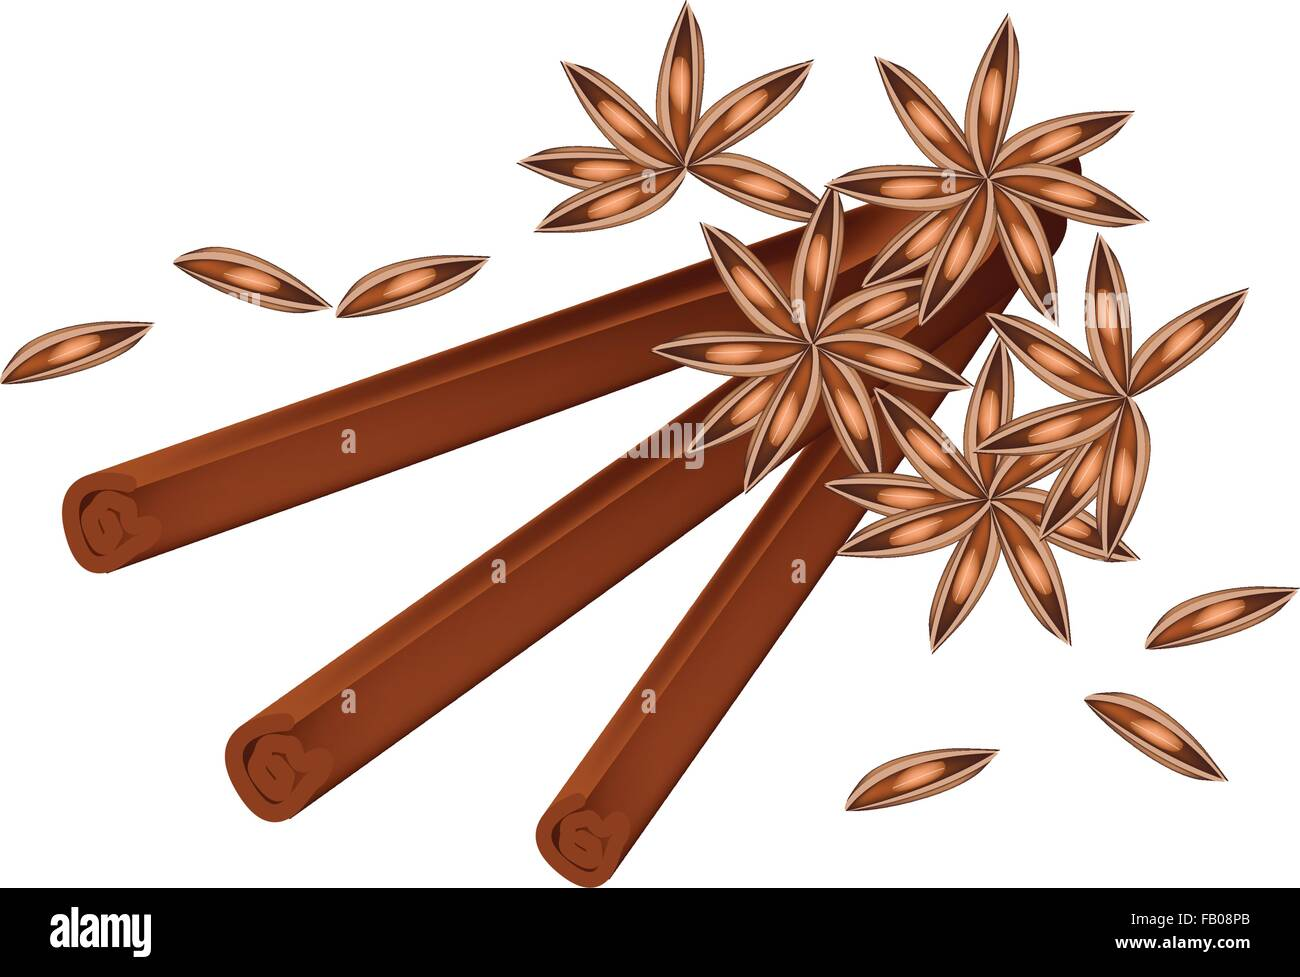 Vegetable and Herb, A Pile of Dried Star Anise, Star Aniseed or Illicium verum with Cinnamon Sticks Used for Seasoning Stock Vector